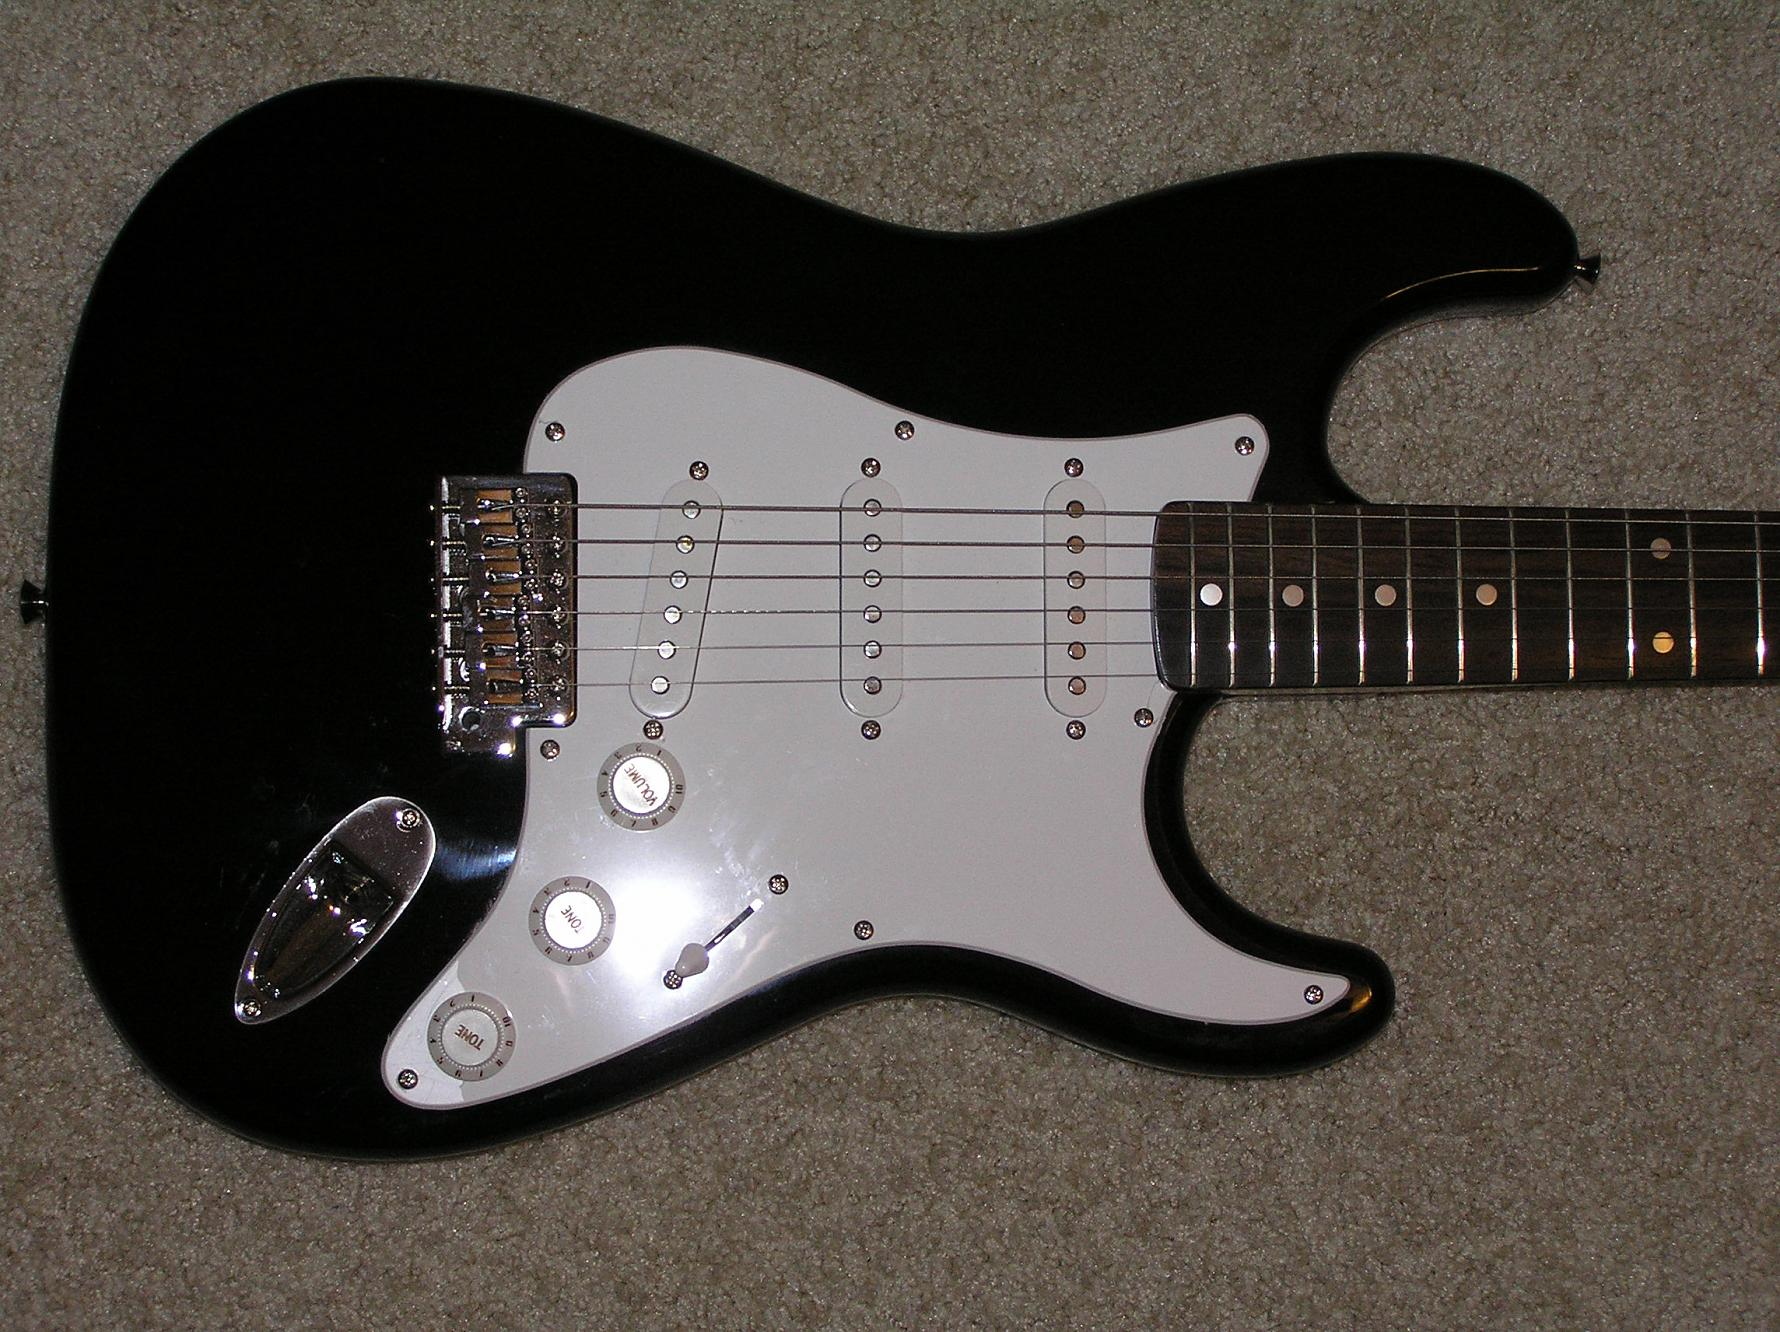 f s fender squier stratocaster electric guitar r c tech forums. Black Bedroom Furniture Sets. Home Design Ideas